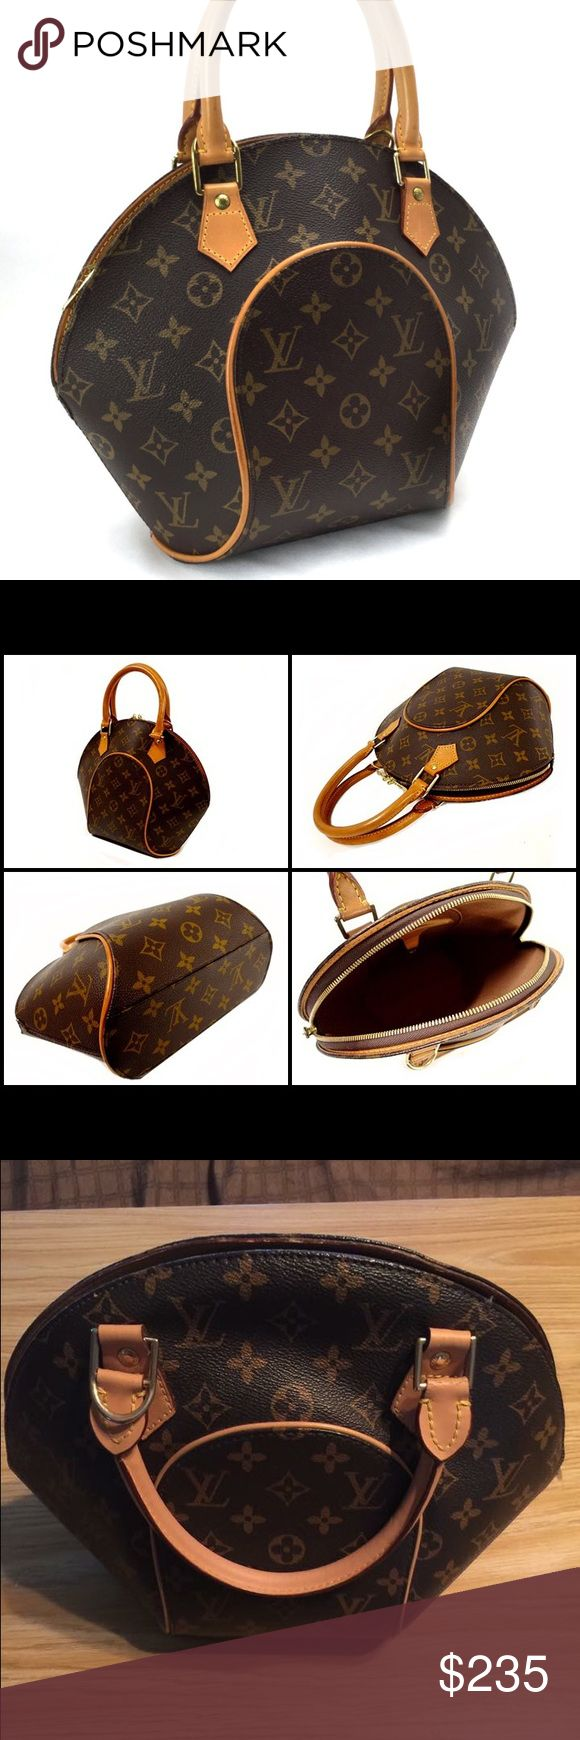 Louis Vuitton Monogram Eclipse Purse Great condition! I purchased this from someone and when I got home with it I noticed it smells like cigarette smoke - I do not smoke, and the smells makes me sick - it is not very strong but I just can't do it.  I will try to get some of it out though! Retails for $640 I bought it for $450 There are some ink stains inside - I will upload photos later of them! The date code is M51127 Height I believe is 11' Offers are welcomed - ask any questions you may…